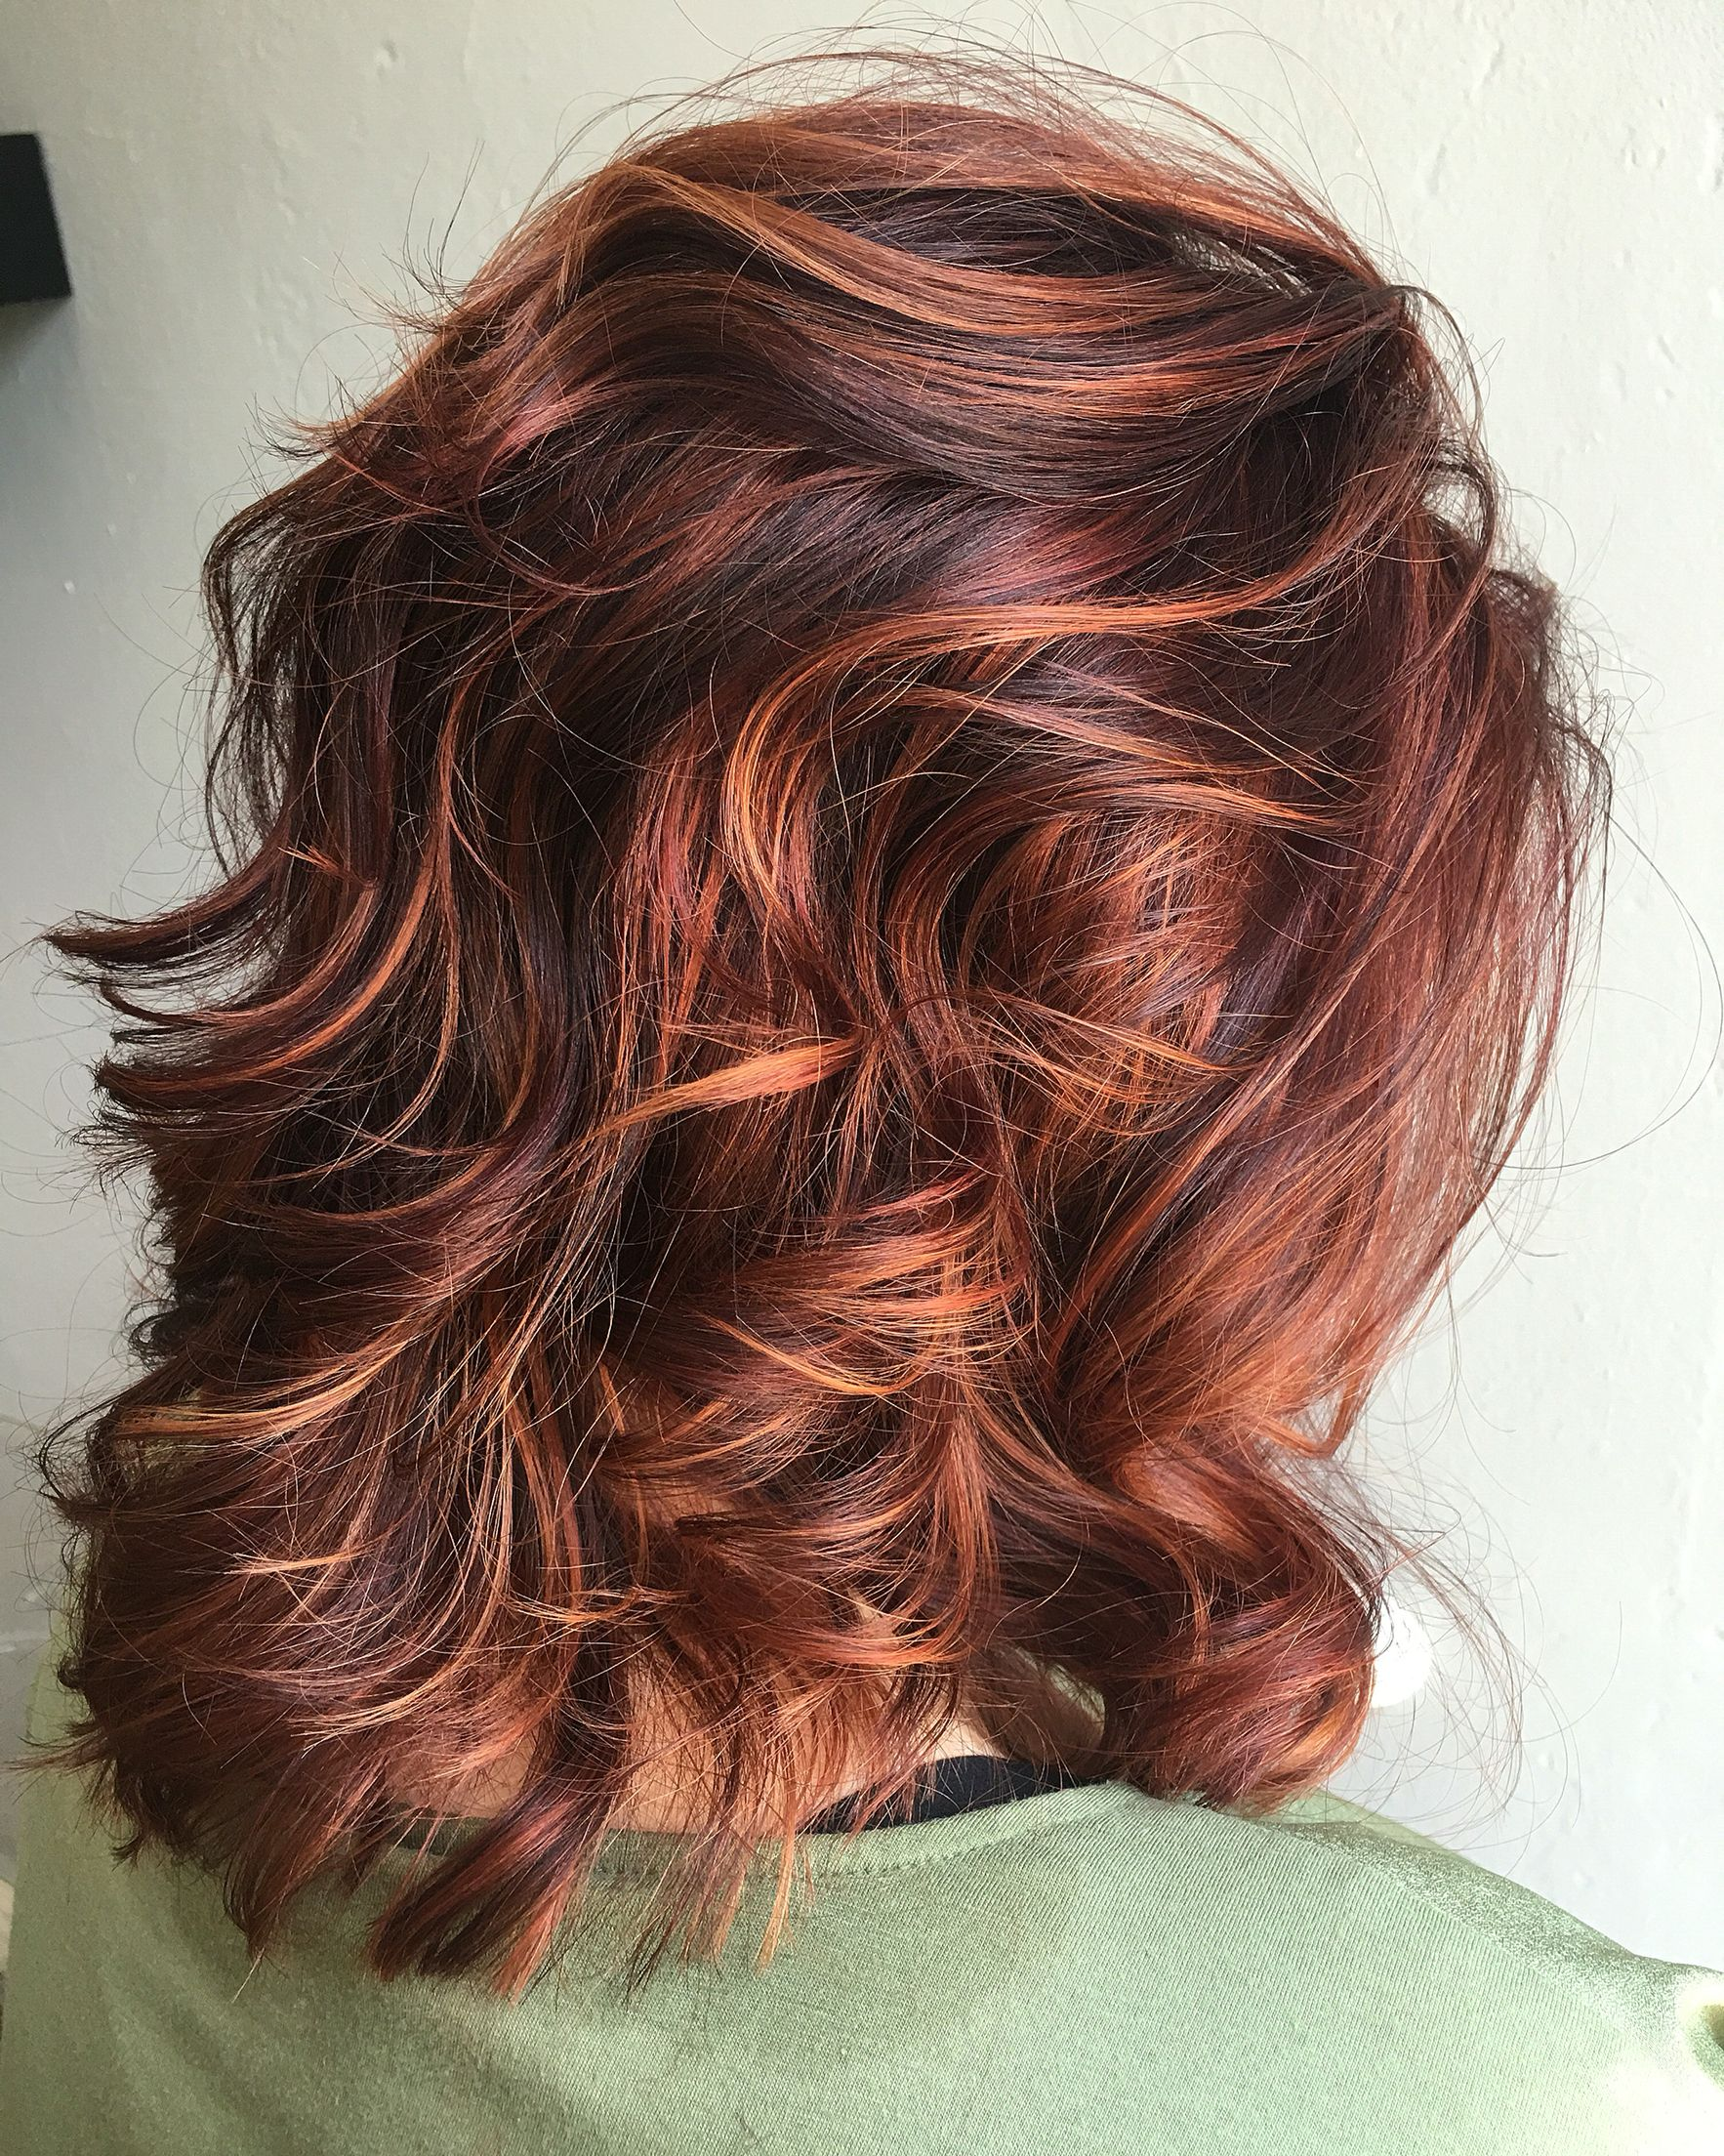 Rv base with copper/orange highlights | Color, CuRLz and ...